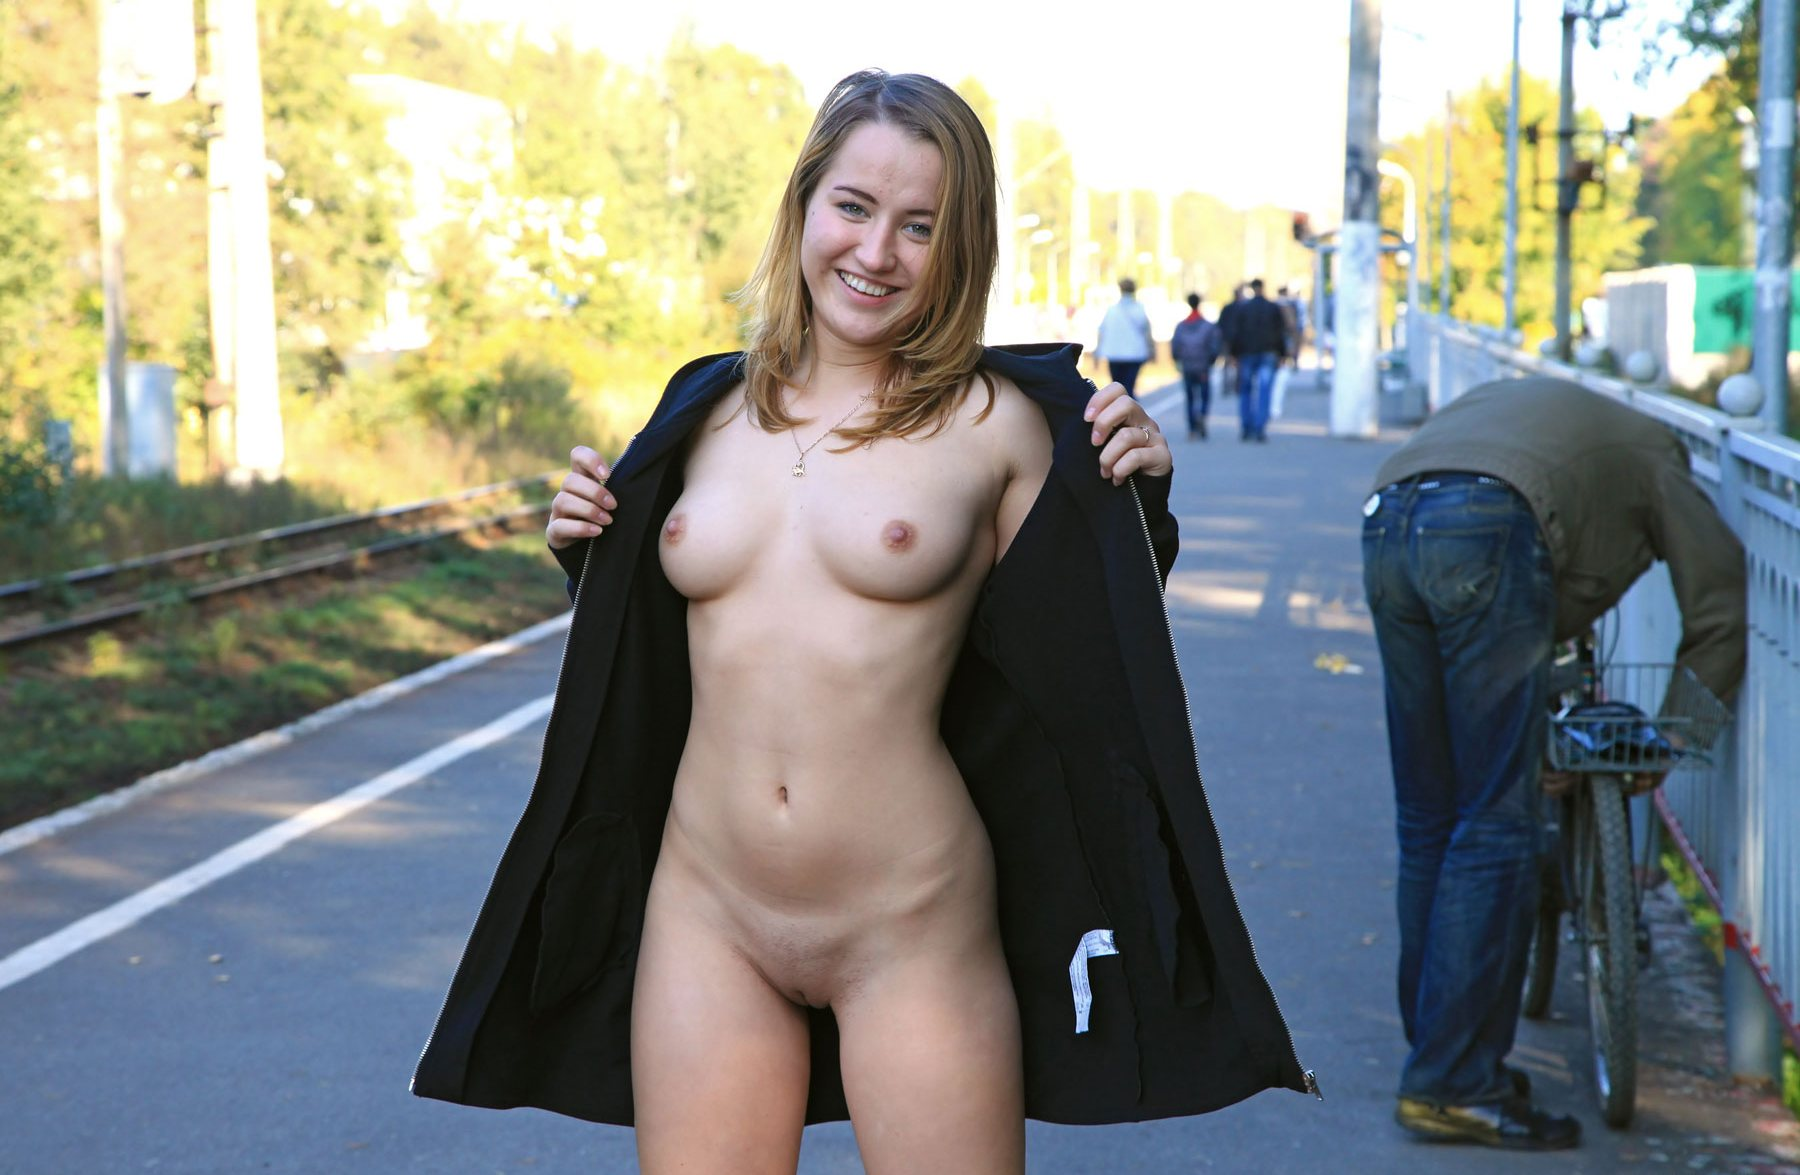 girl naked under jacket